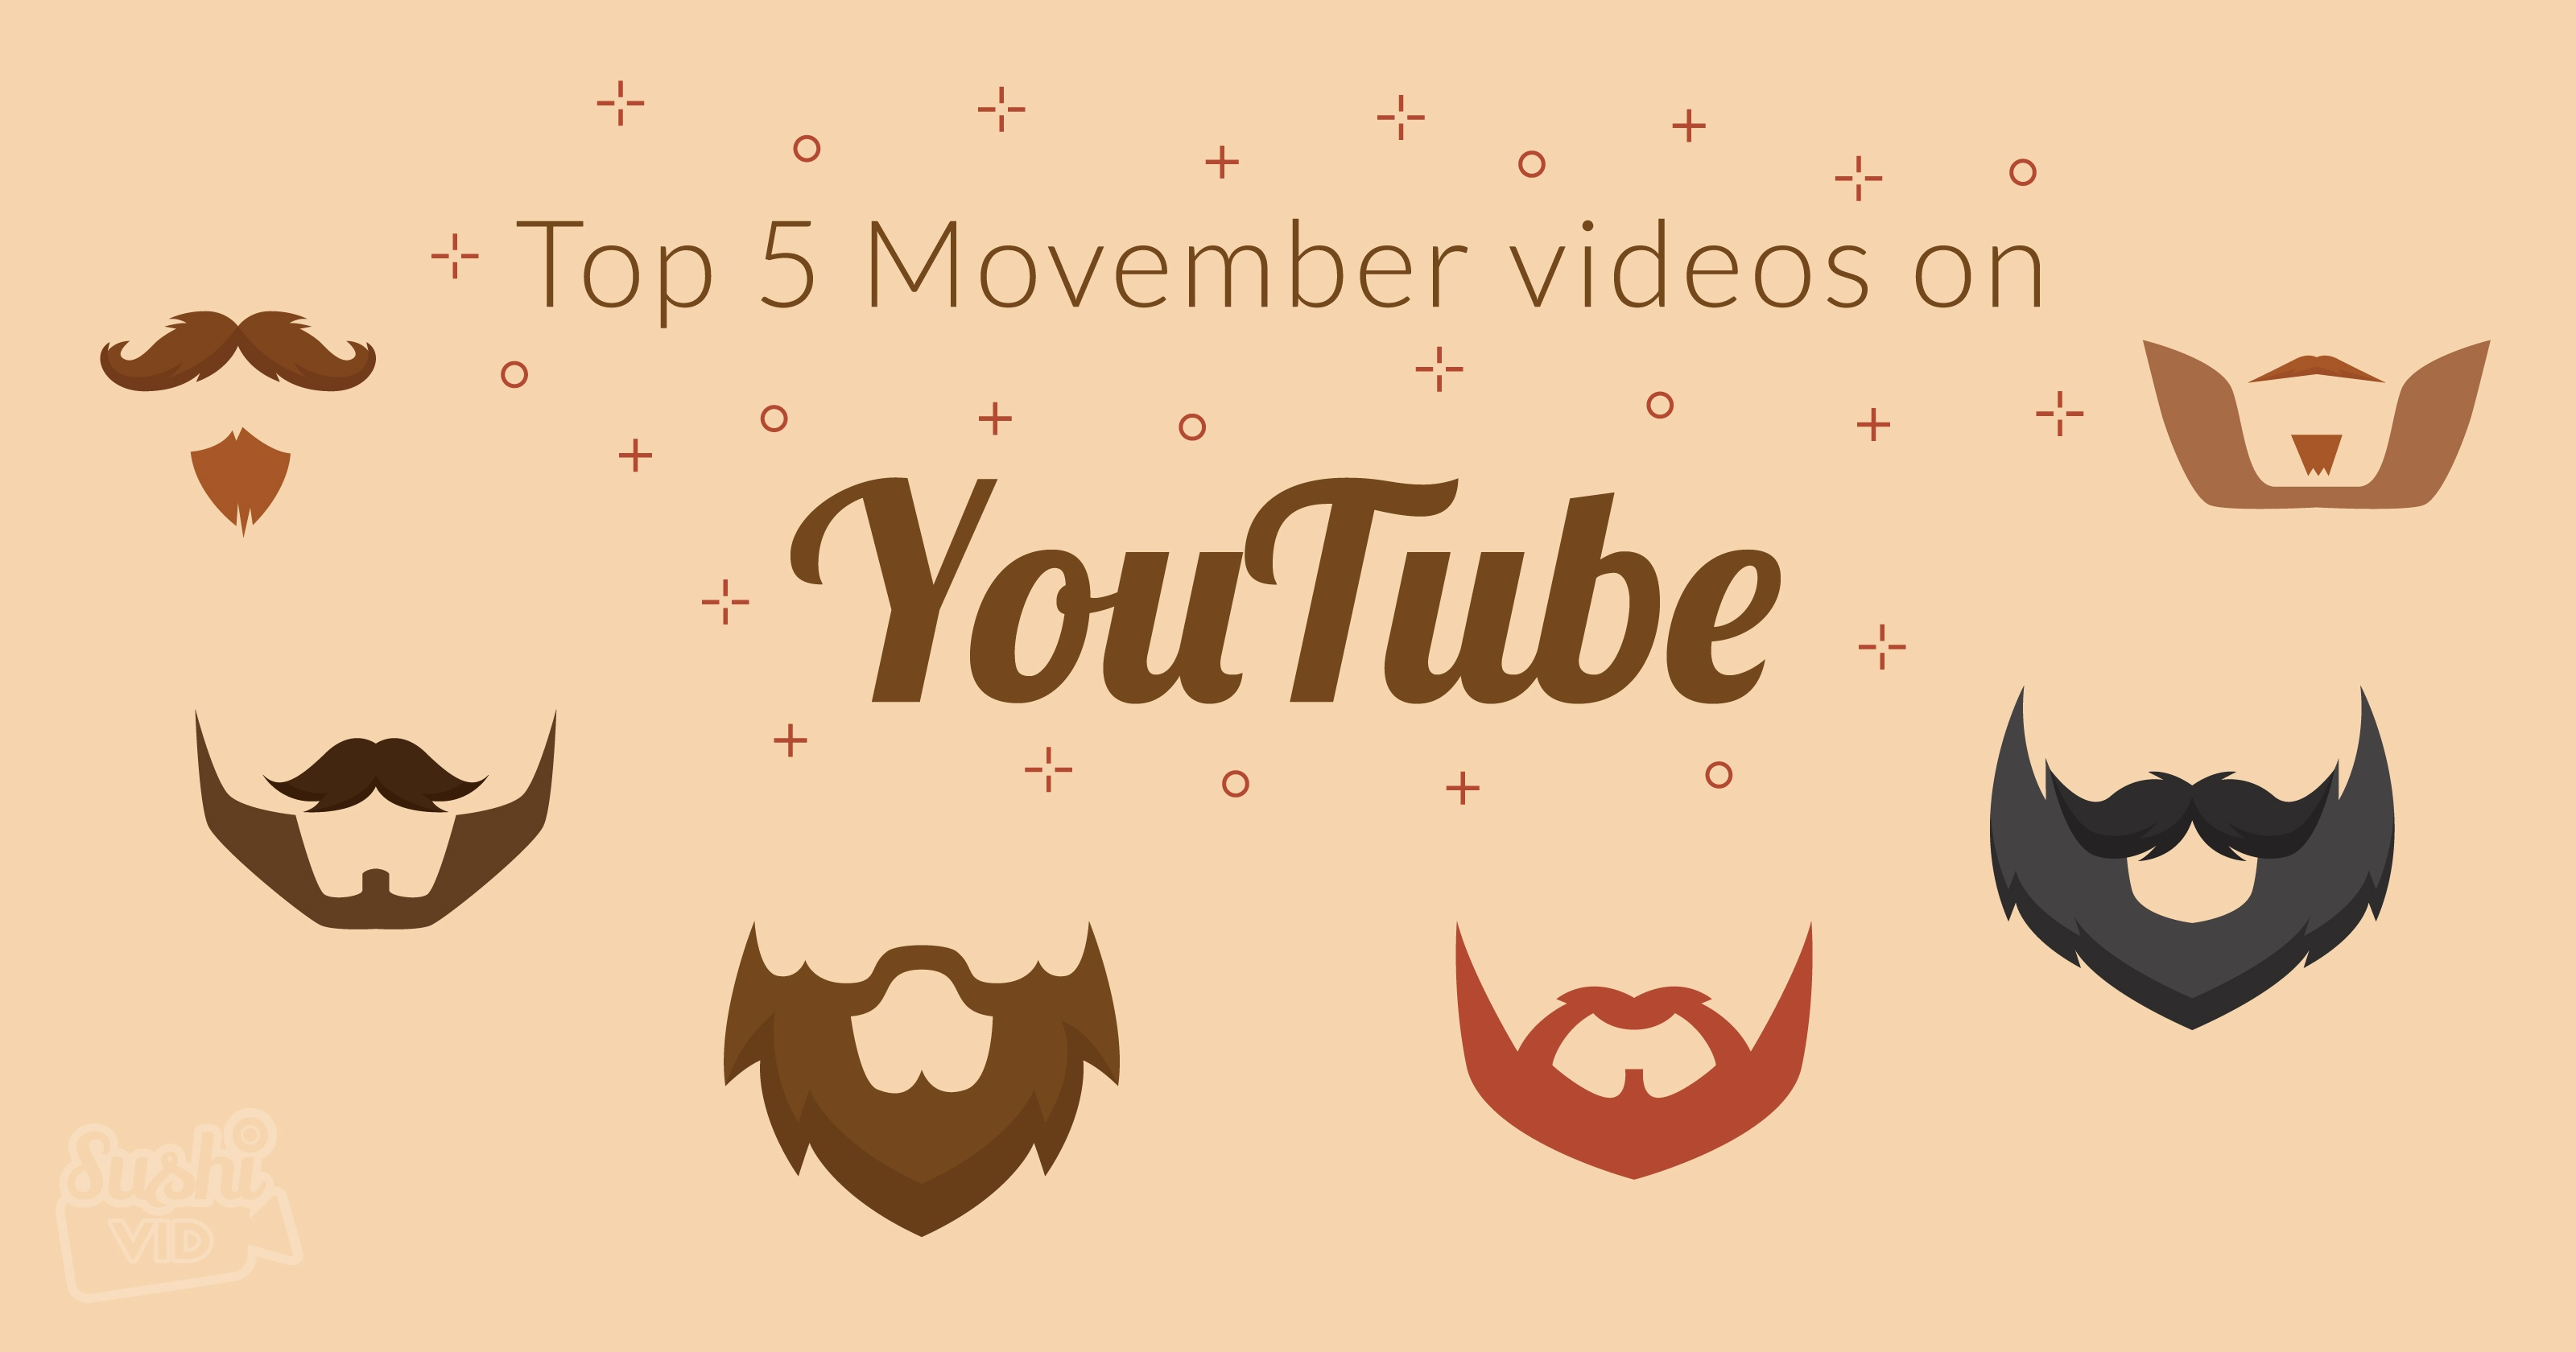 20151101 20  20top 205 20movember 20videos 20on 20youtube 20  20influencer 20marketing